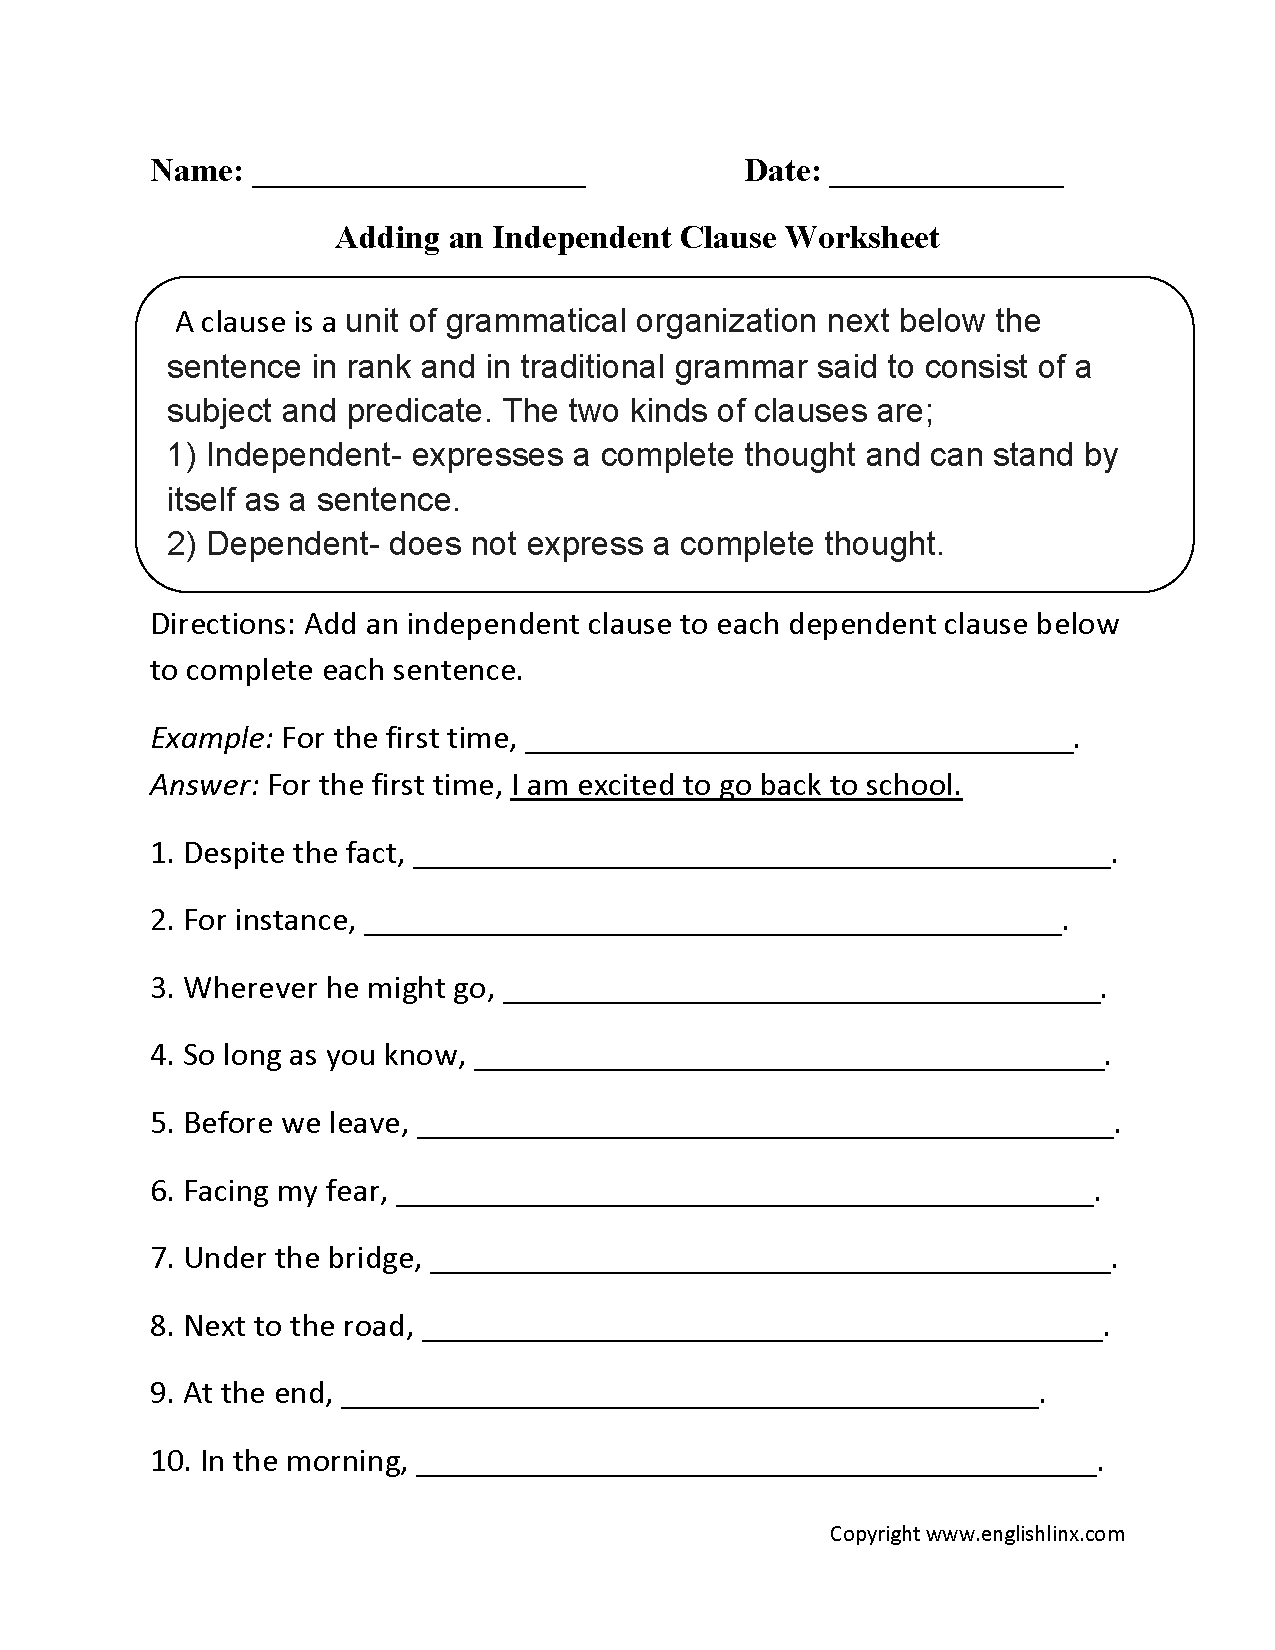 Adding An Independent Clause Worksheet